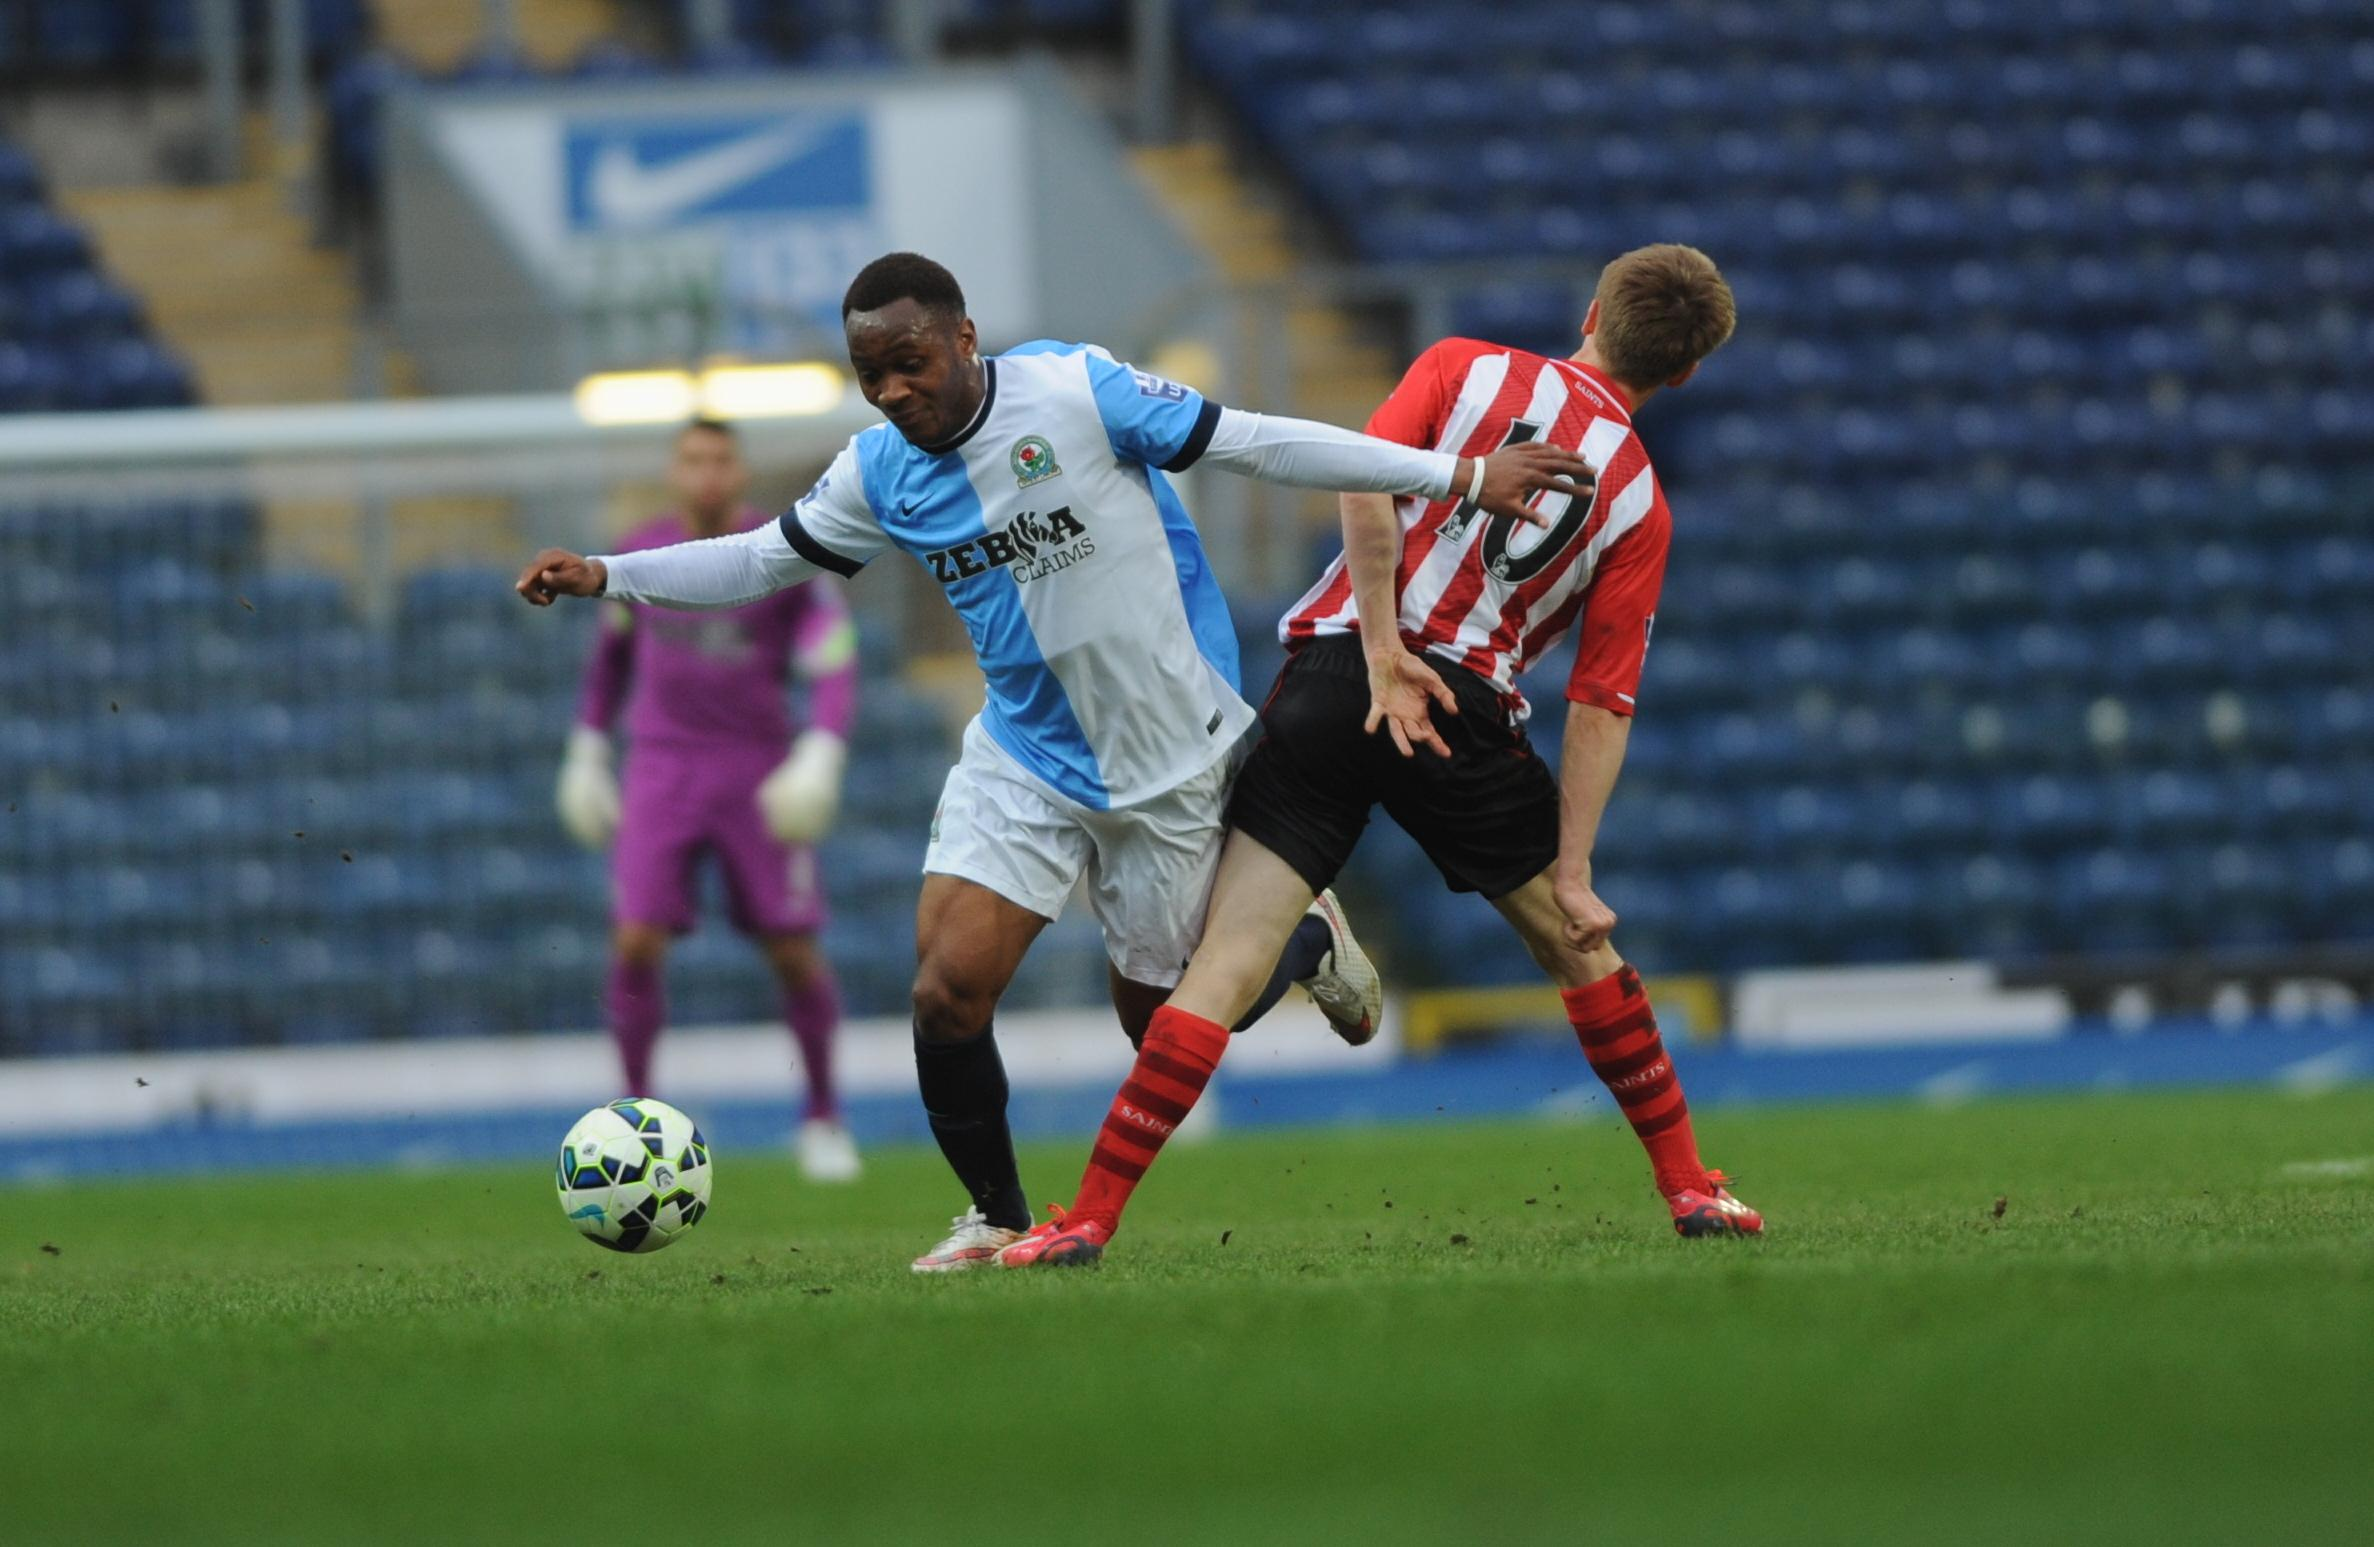 It is hoped that17-year-old defender Ryan Nyambe can make the breakthrough into Rovers' first-team set-up